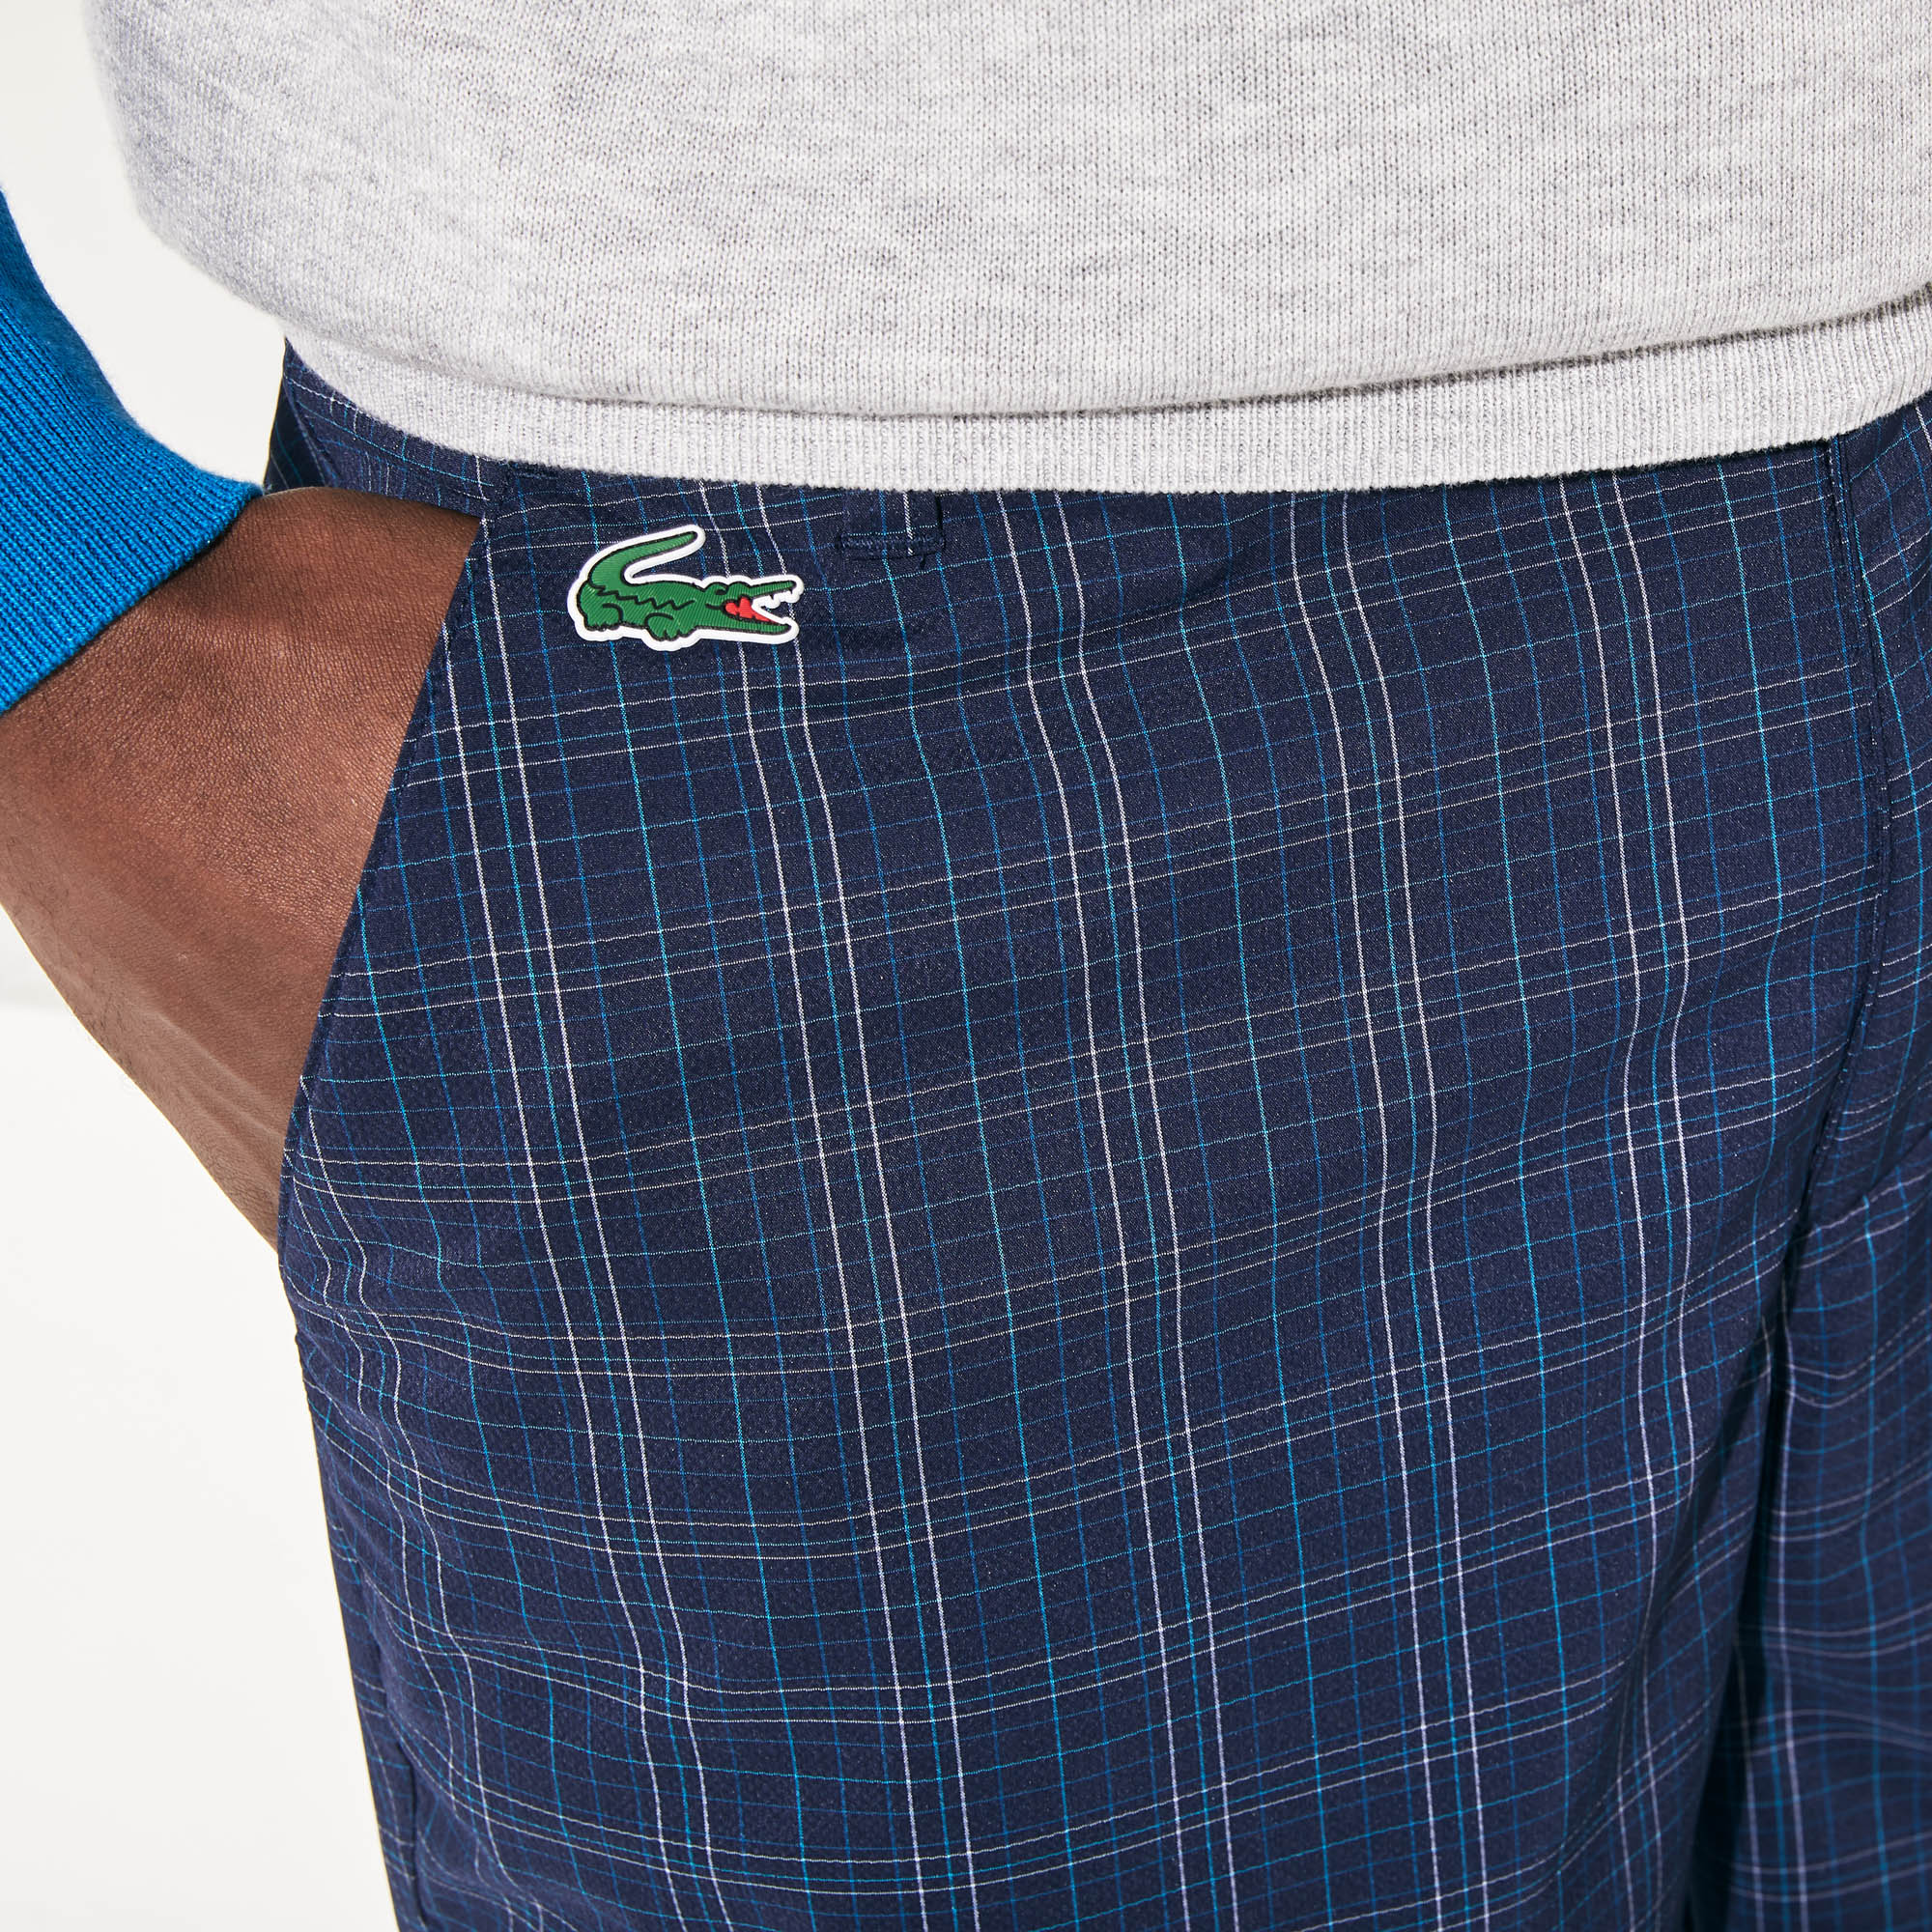 Men's Lacoste SPORT Checked Stretch Golf Bermudas